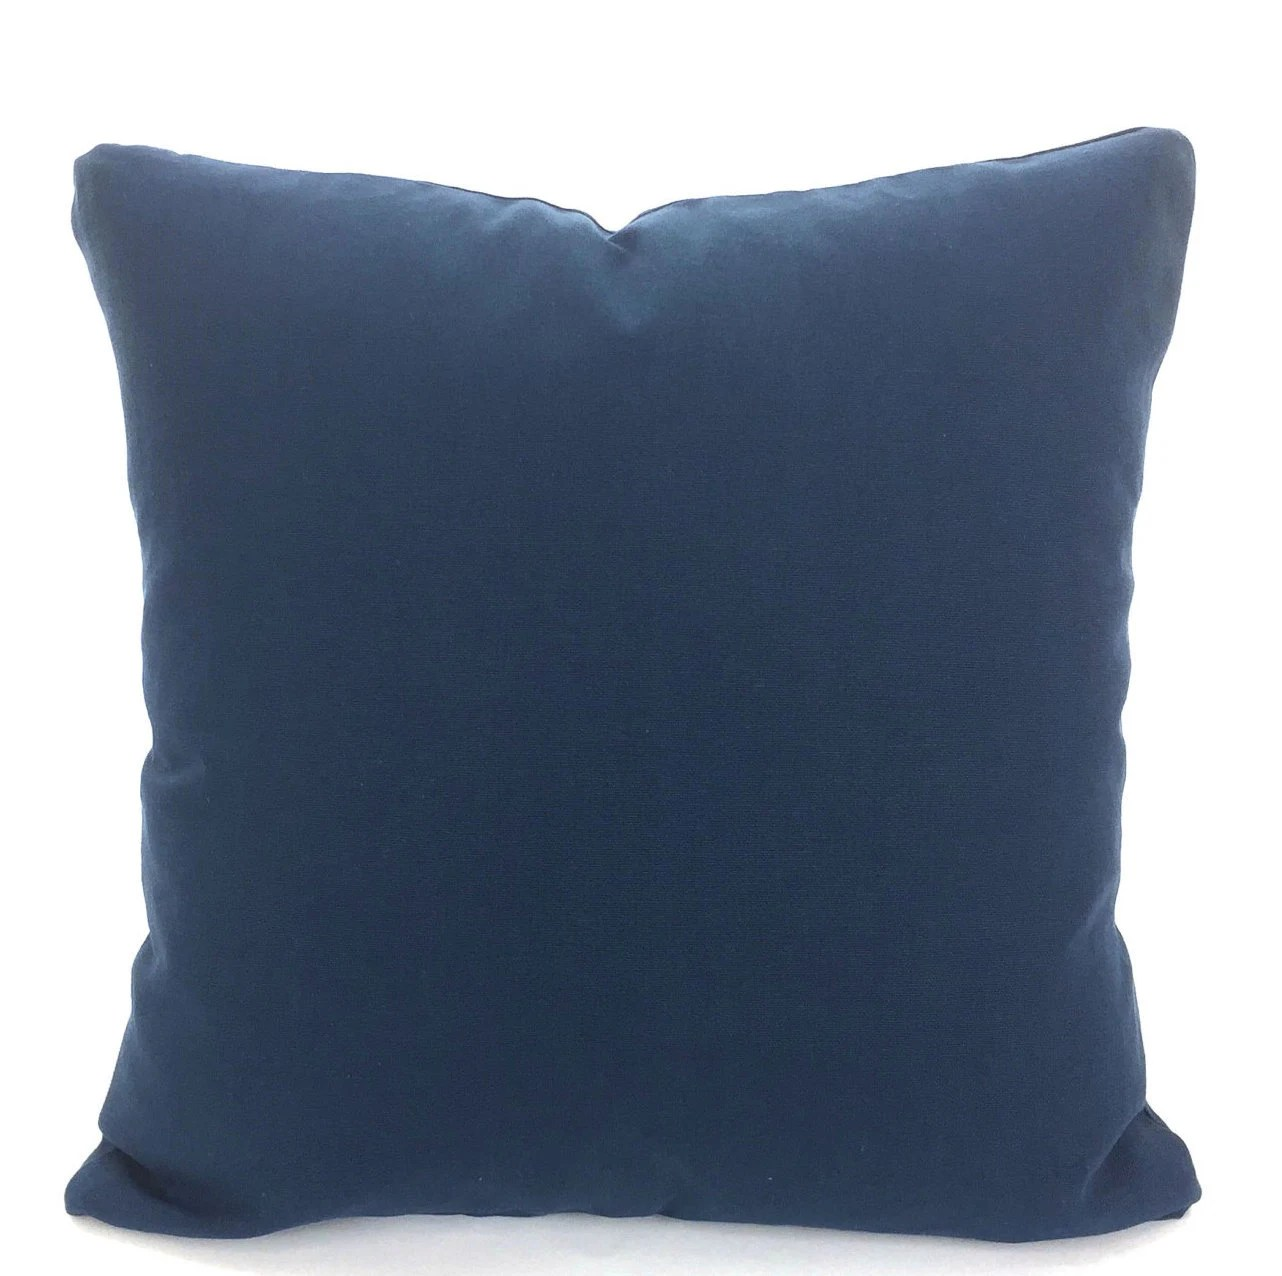 Blaue Kissen Solid Navy Blue Pillow Covers Decorative Throw Pillows